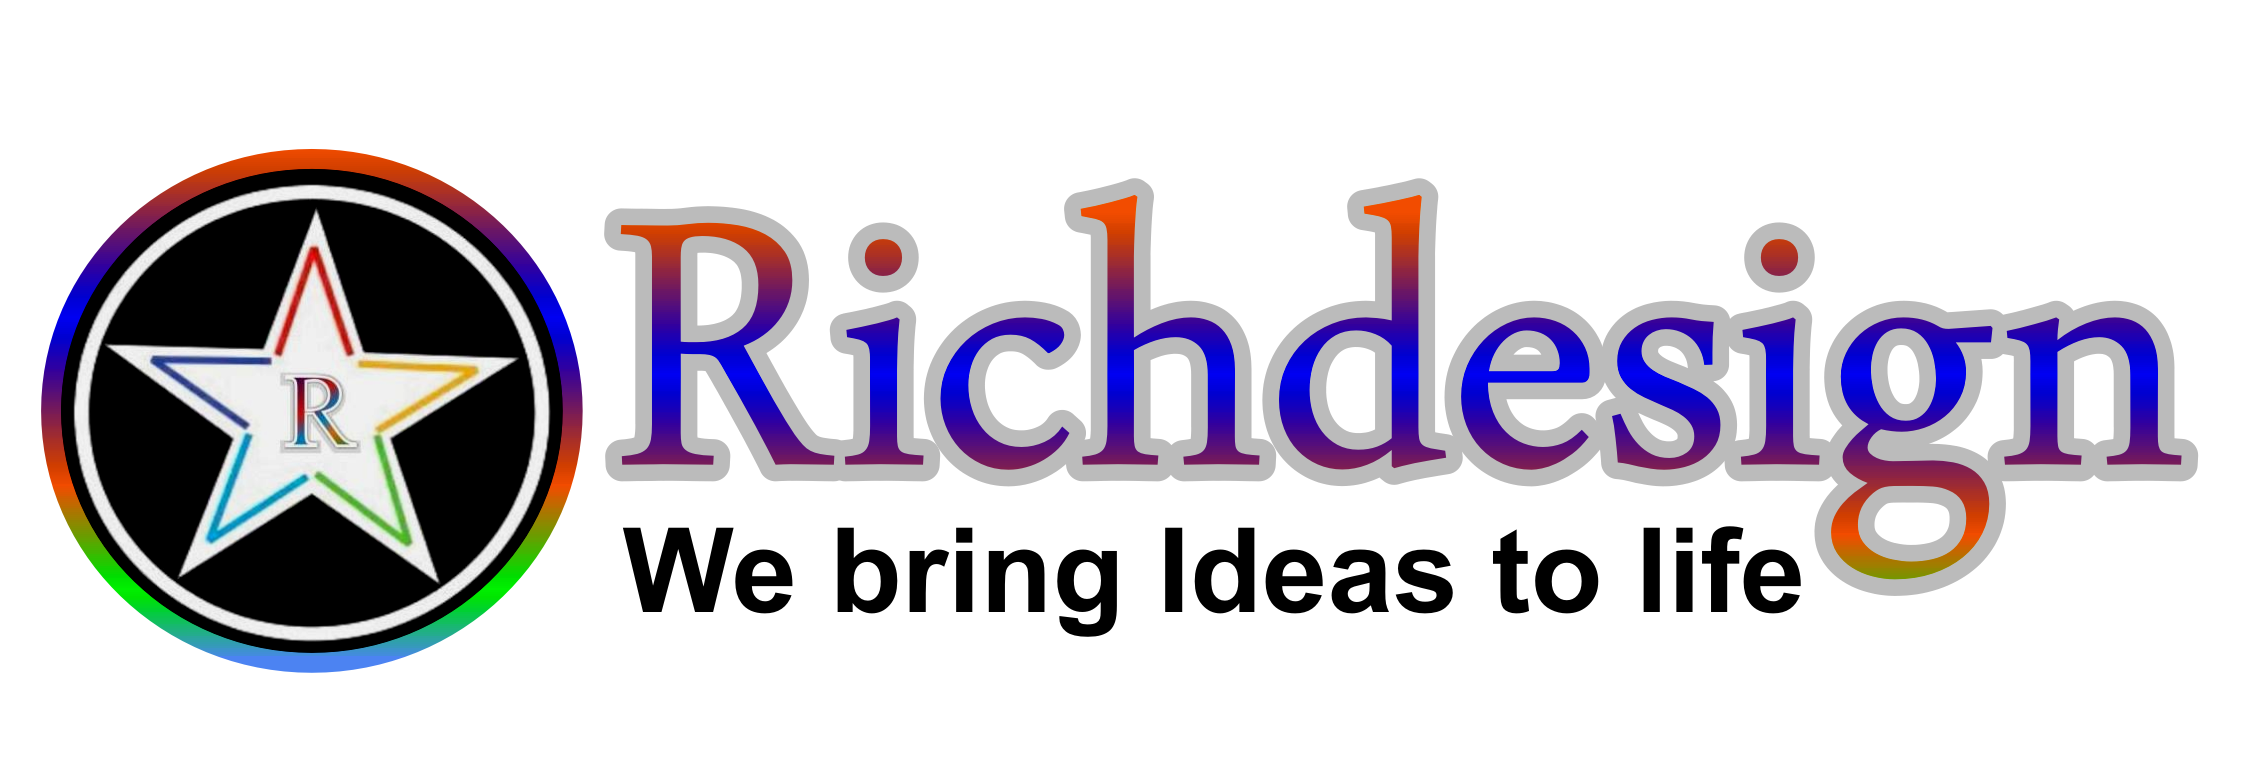 Rich-design  World Wide img